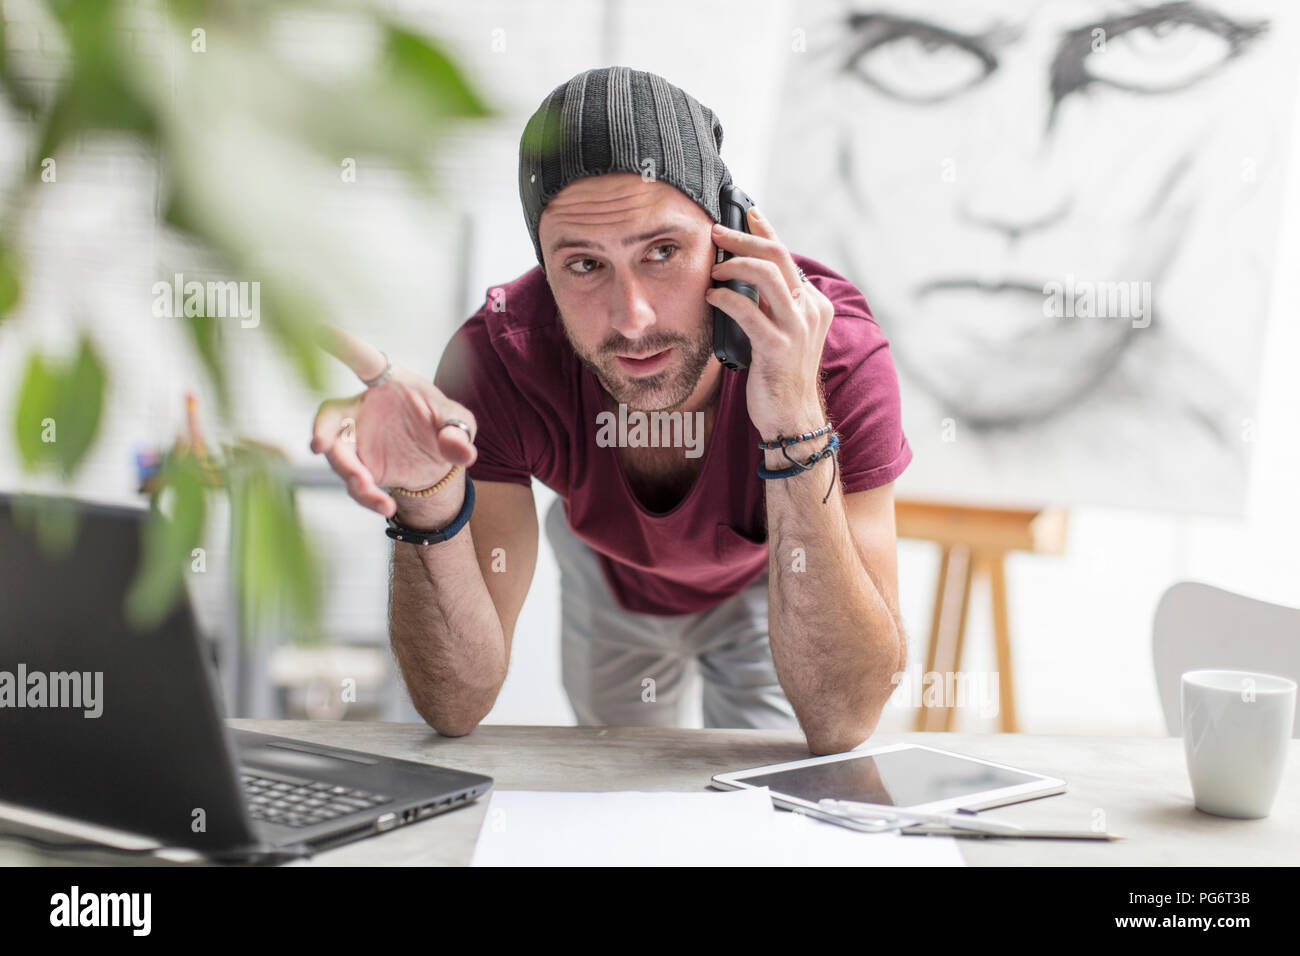 Artist on cell phone in studio - Stock Image